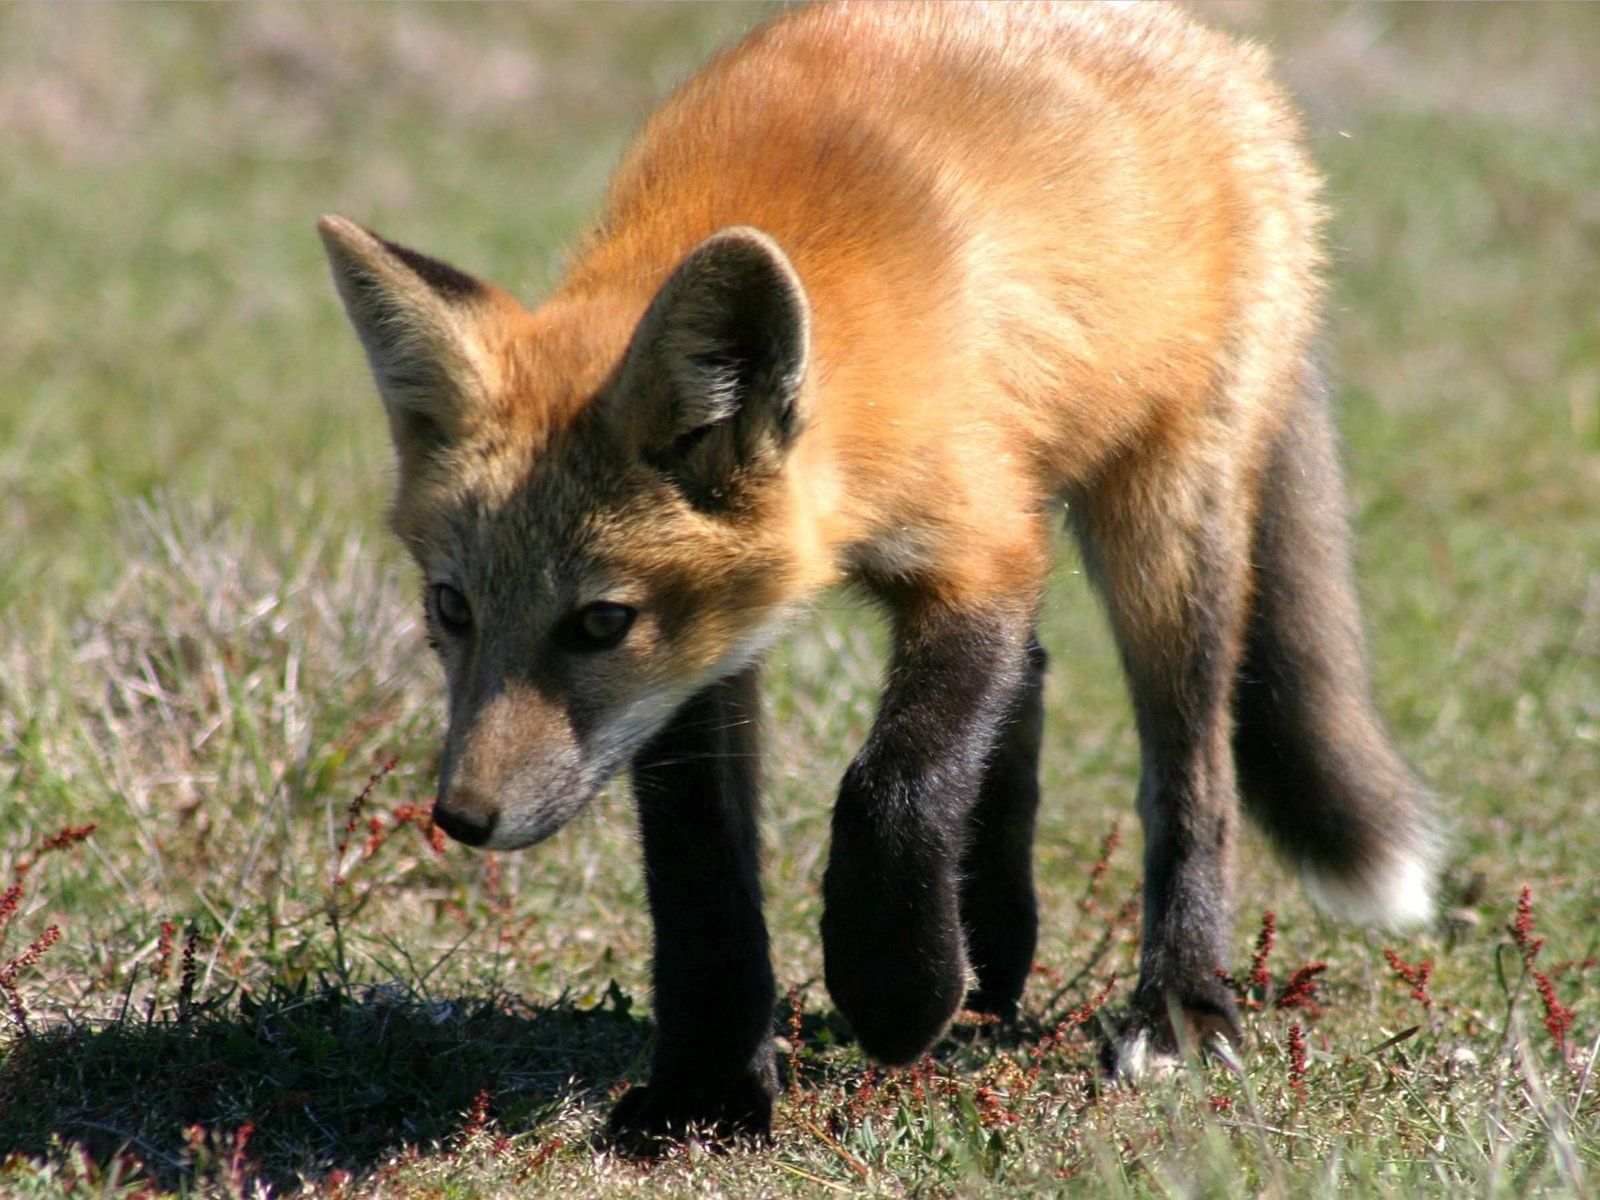 83096 download wallpaper Animals, Fox, Grass, Shadow, Stroll screensavers and pictures for free